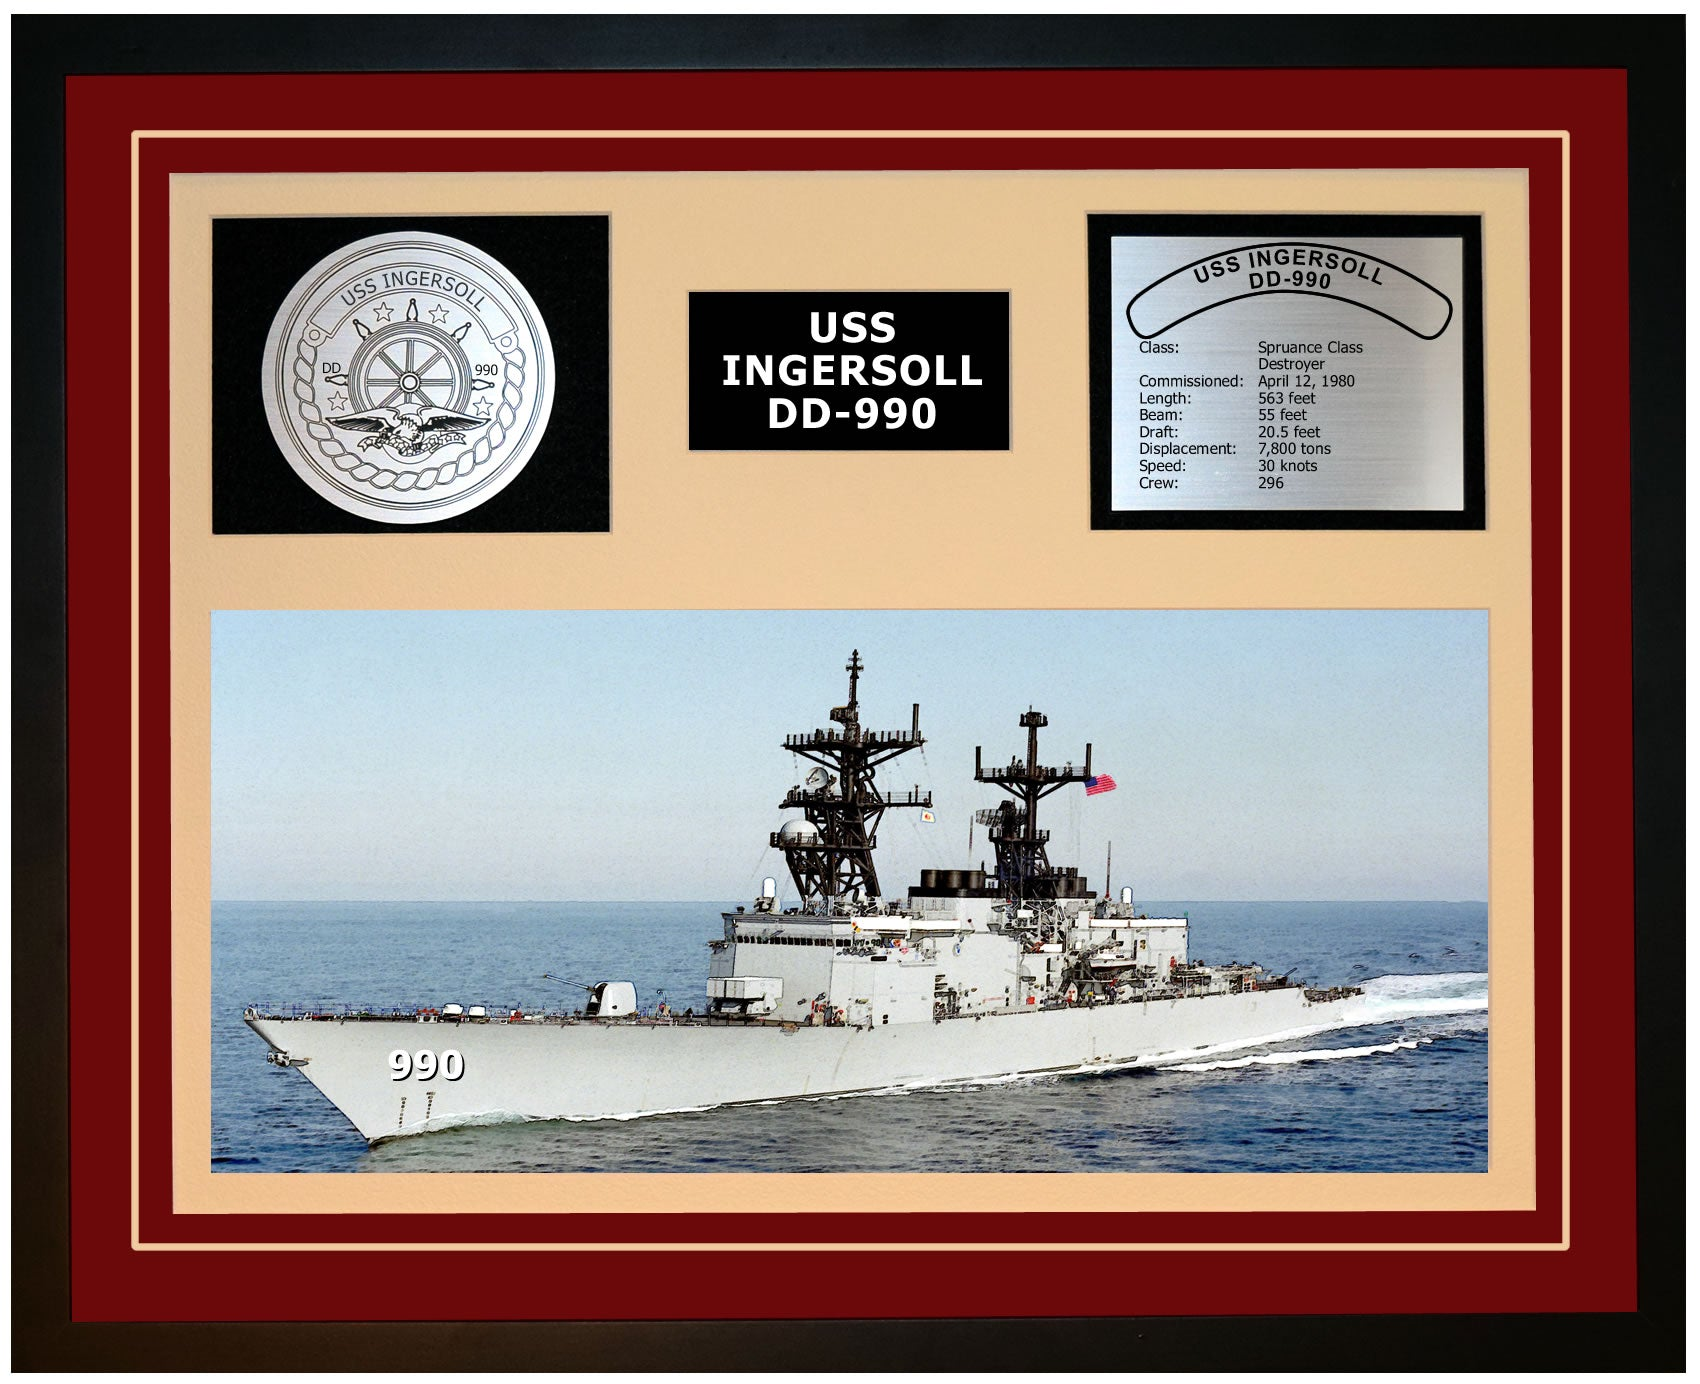 USS INGERSOLL DD-990 Framed Navy Ship Display Burgundy